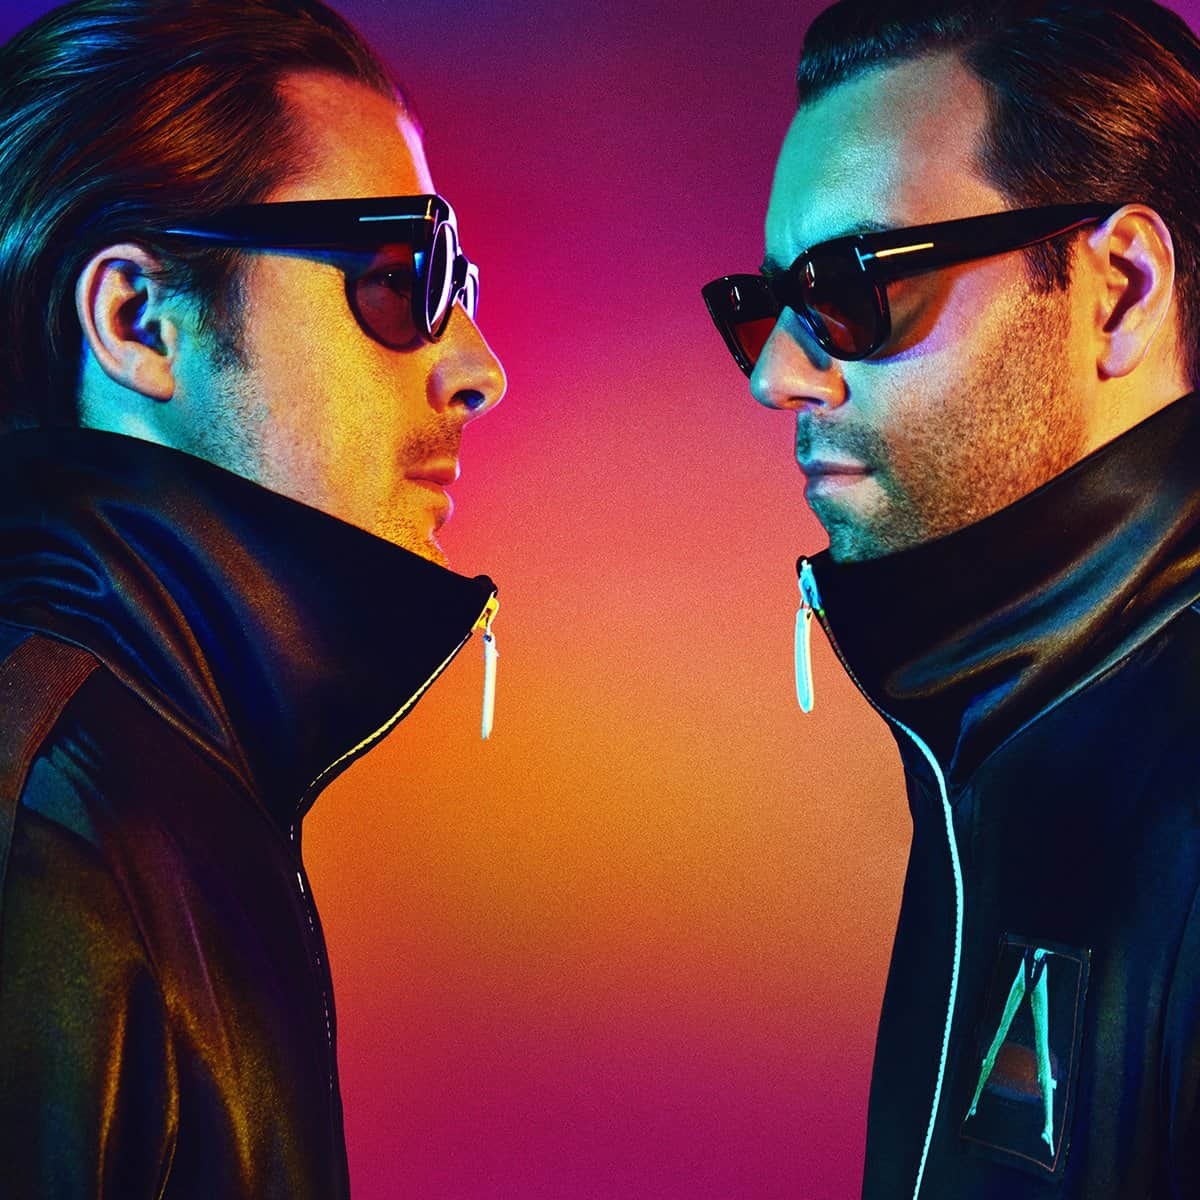 """Axwell Λ Ingrosso release """"Dancing Alone"""" featuring RØMANS"""